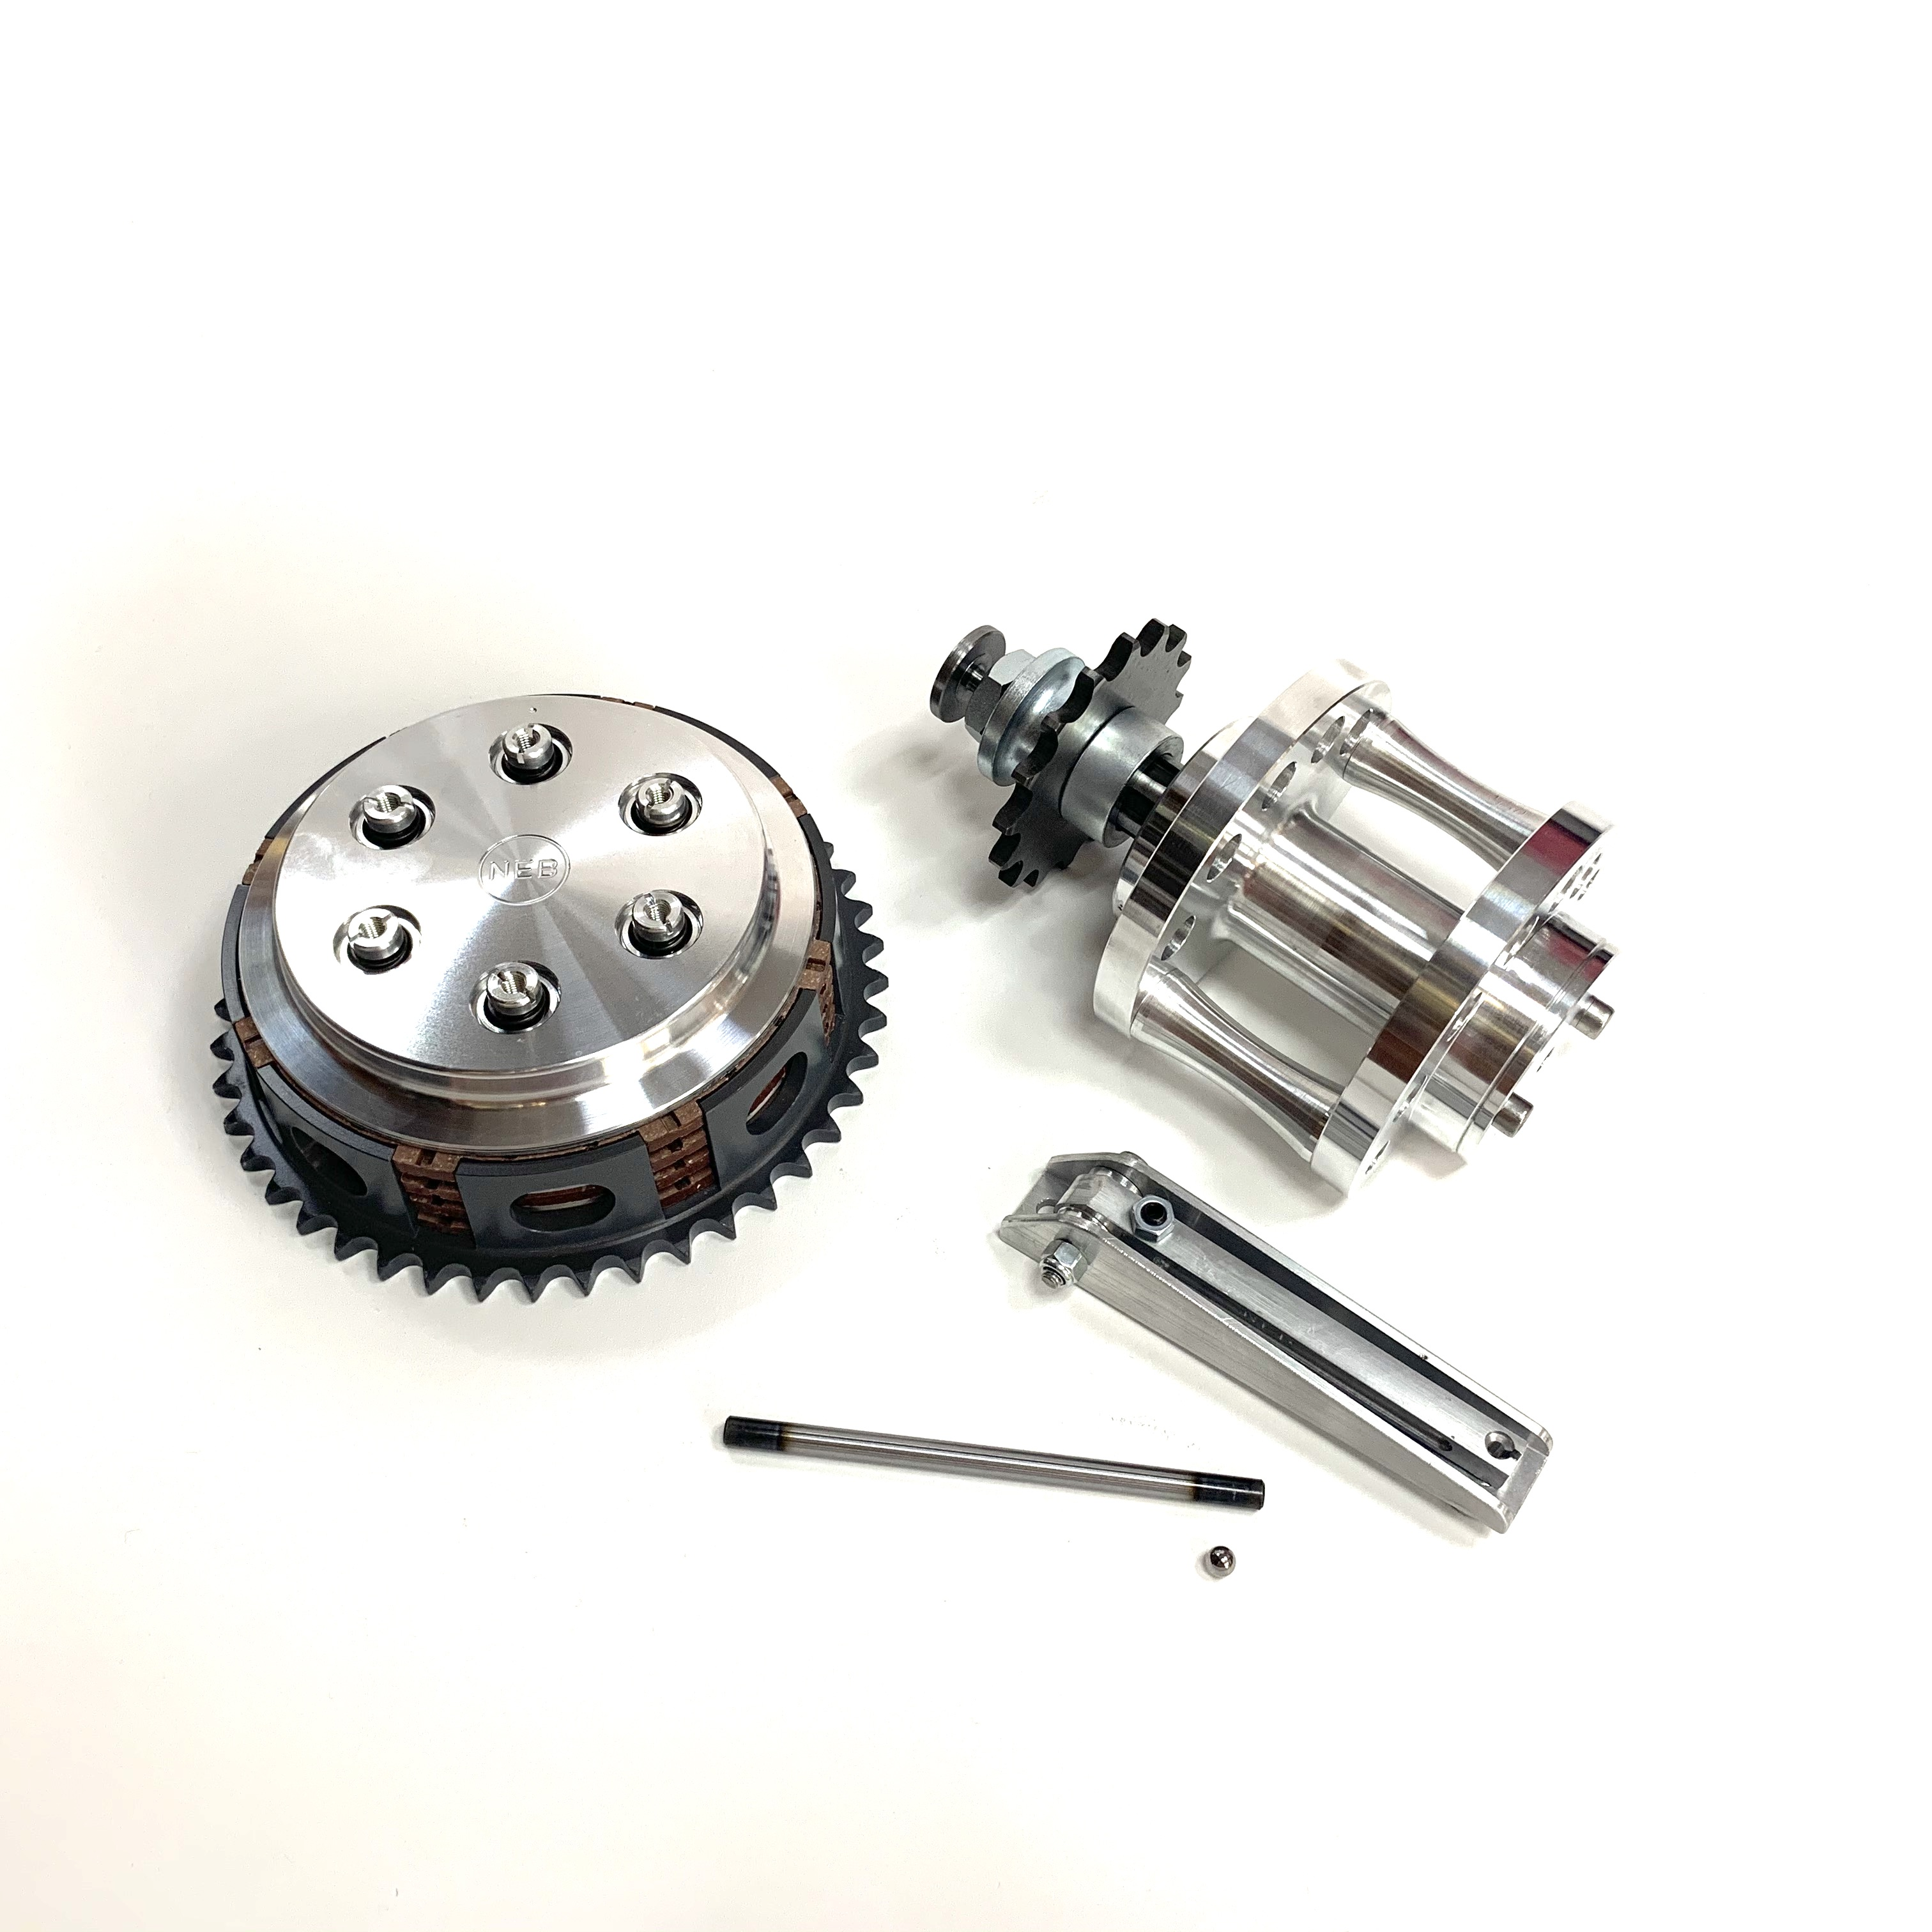 NEB Elite Clutch & MKII Countershaft complete